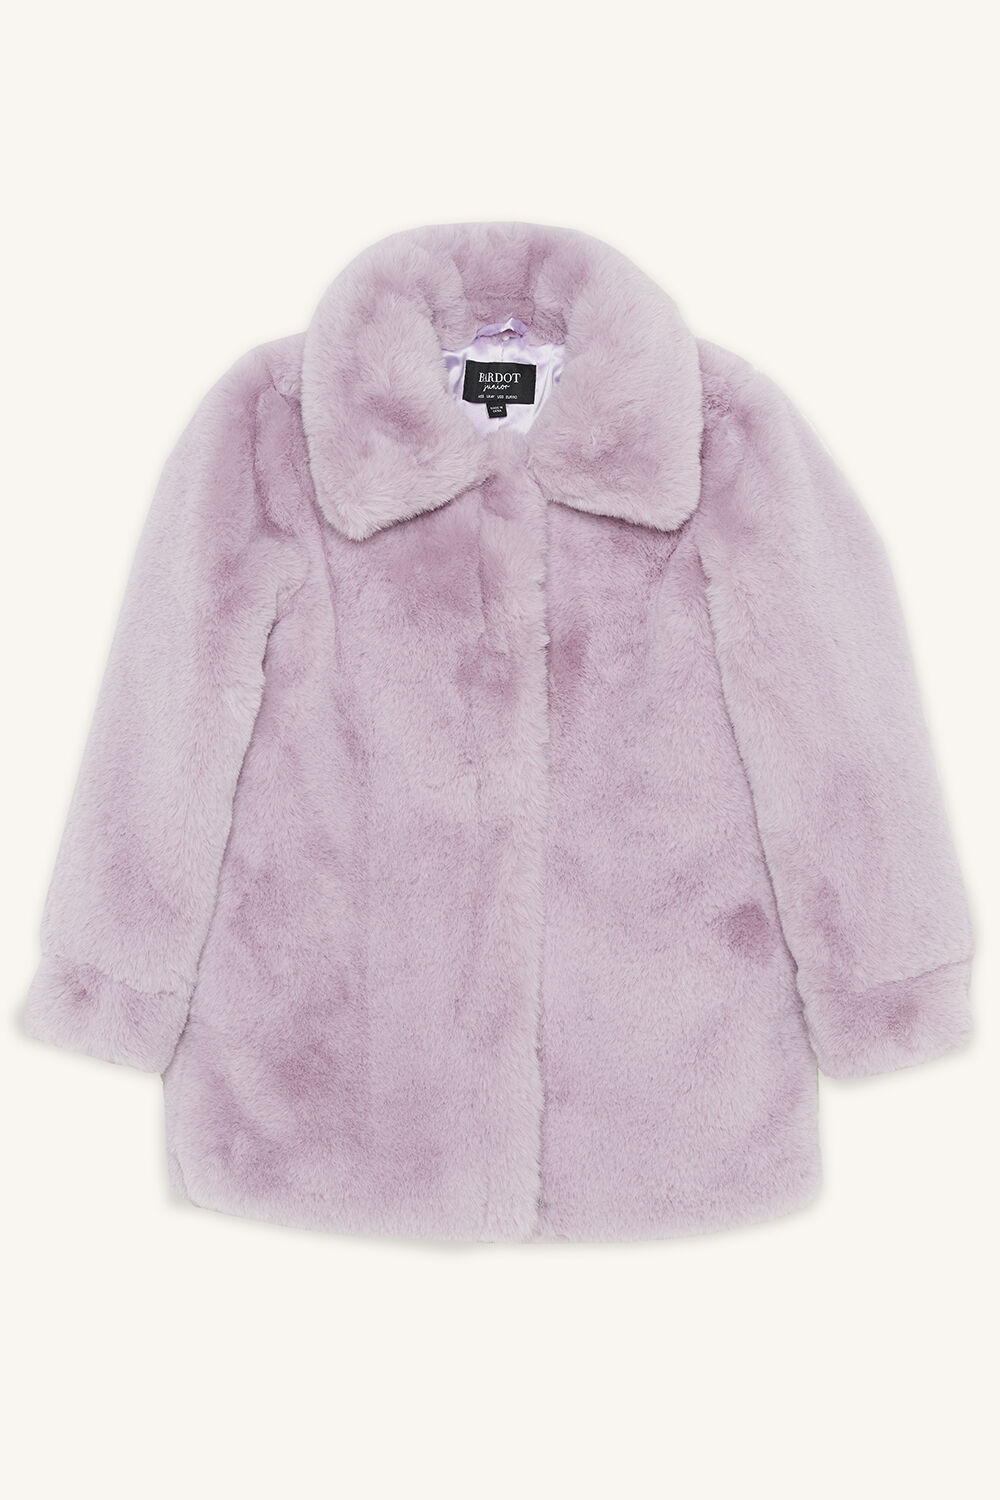 PIA FUR BOMBER in colour LILAC HINT